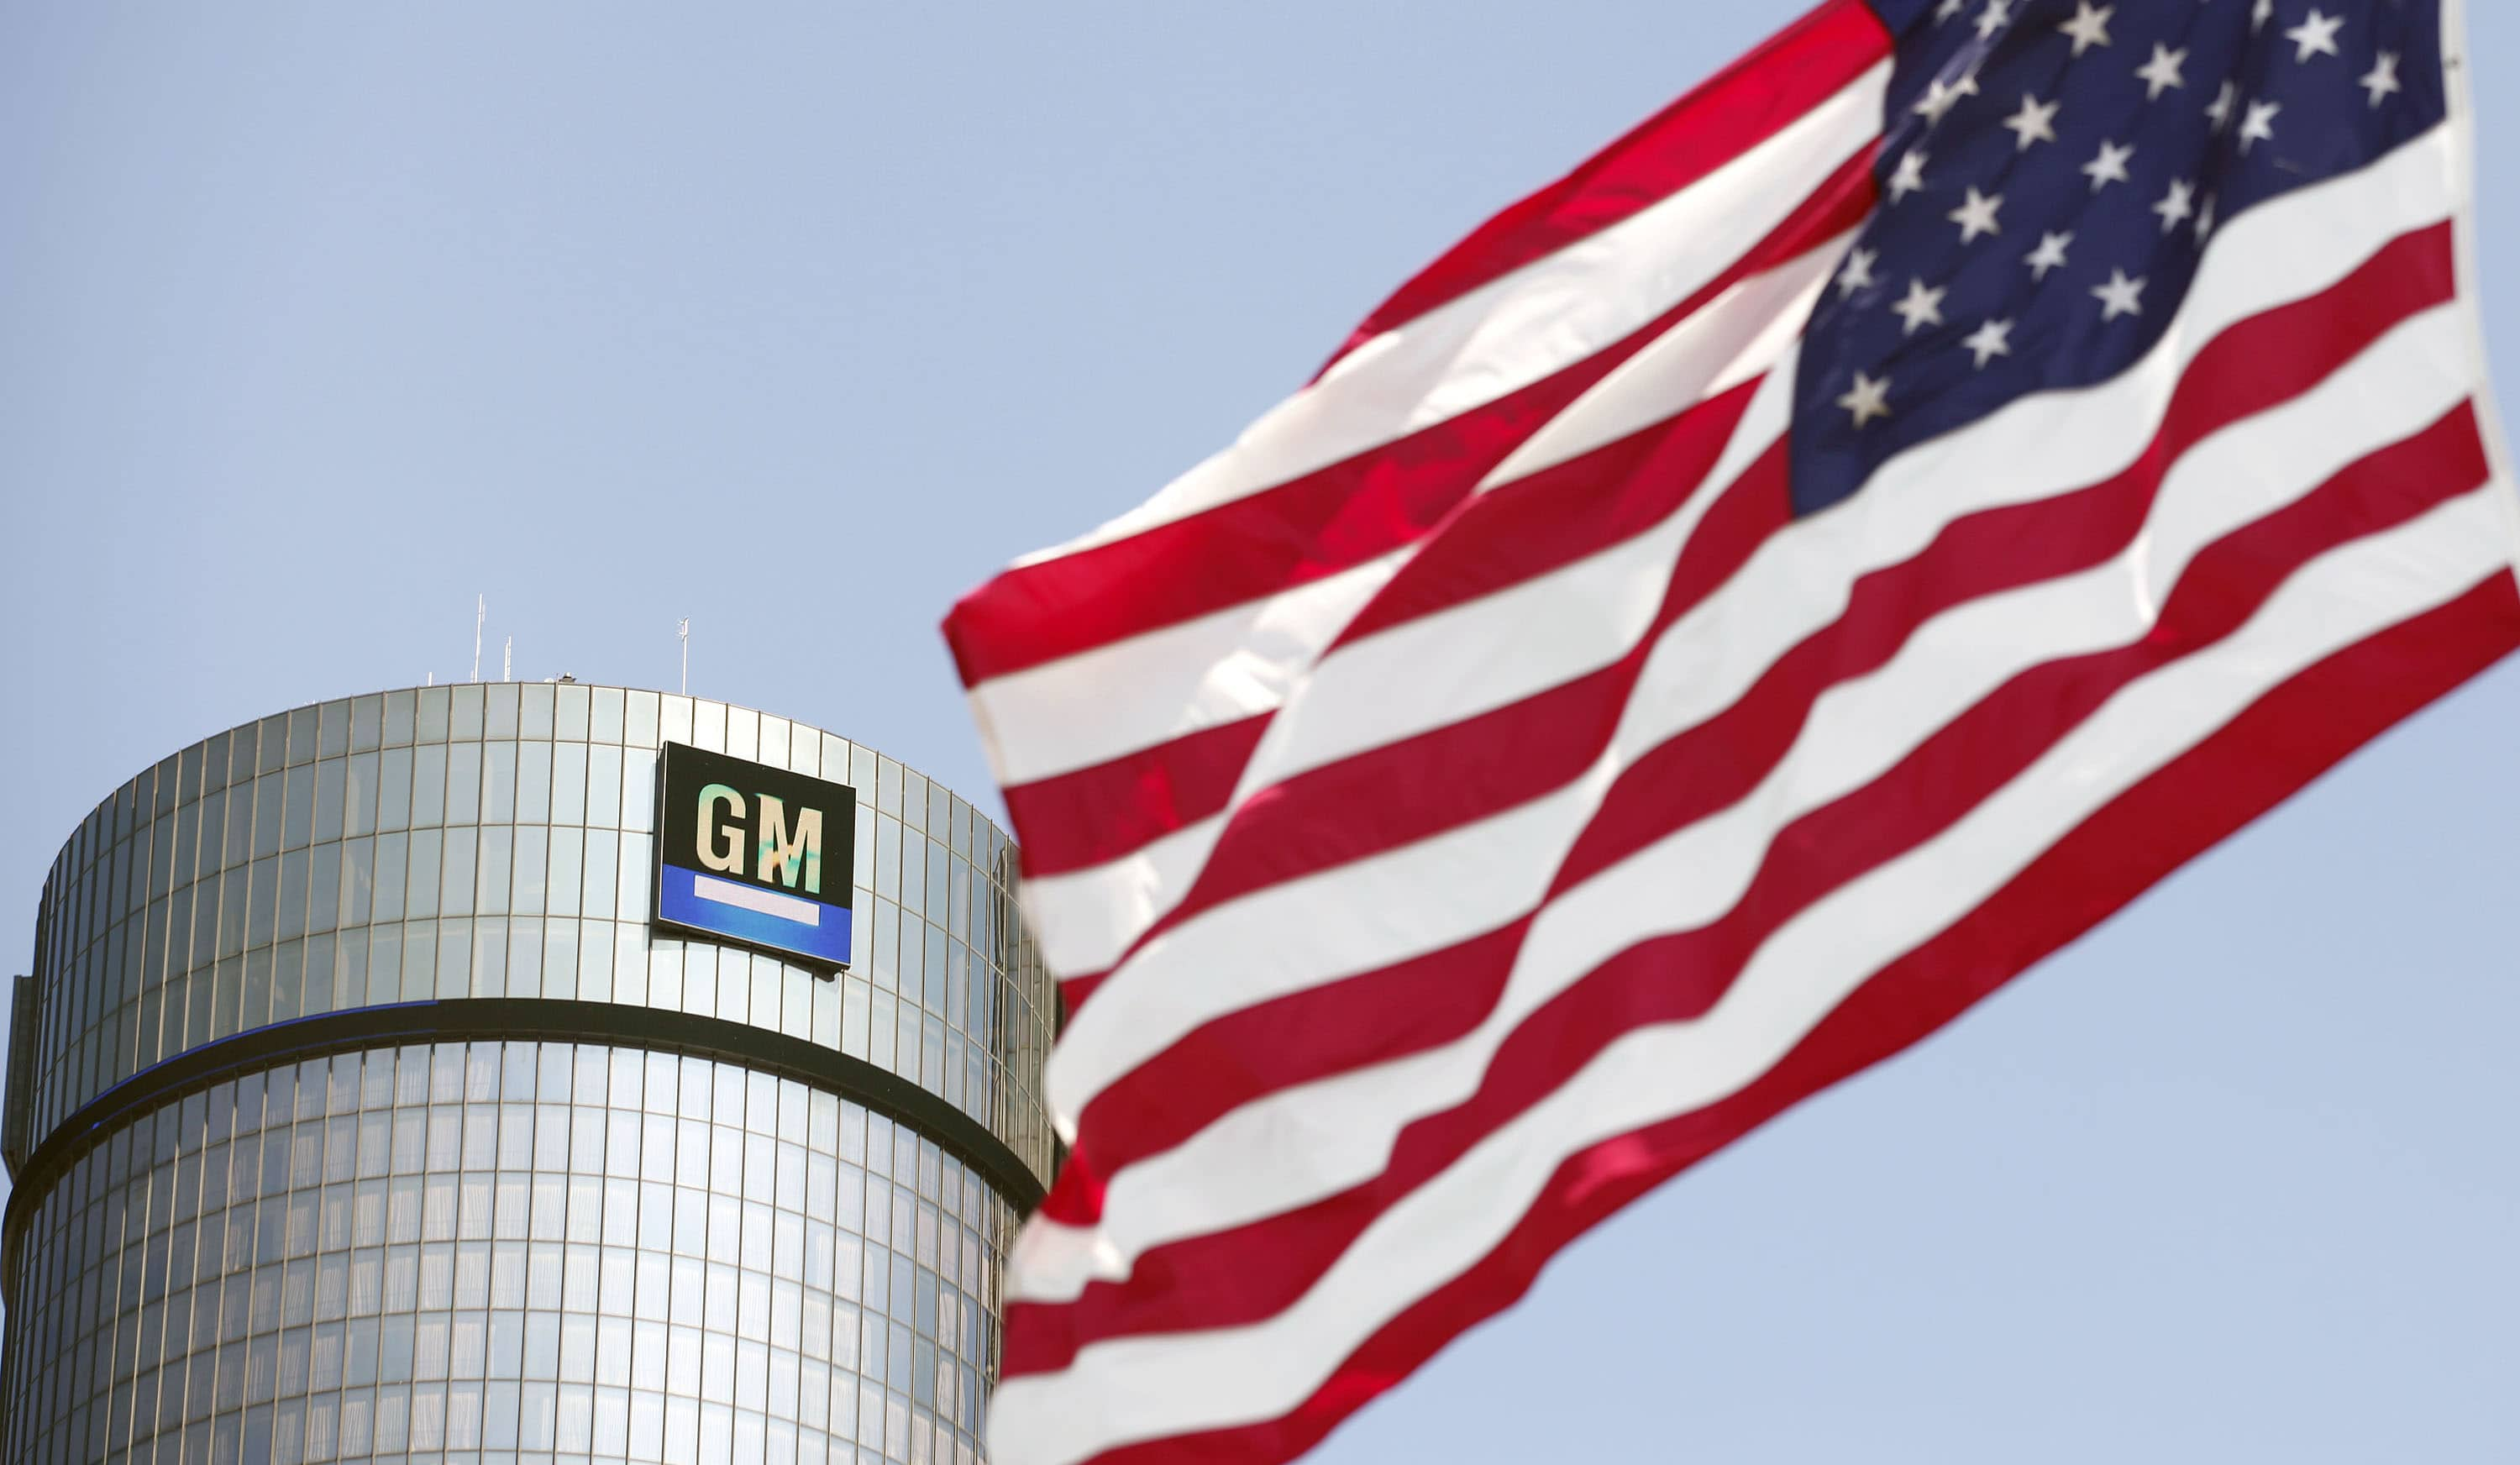 GM headquarters next to an American flag